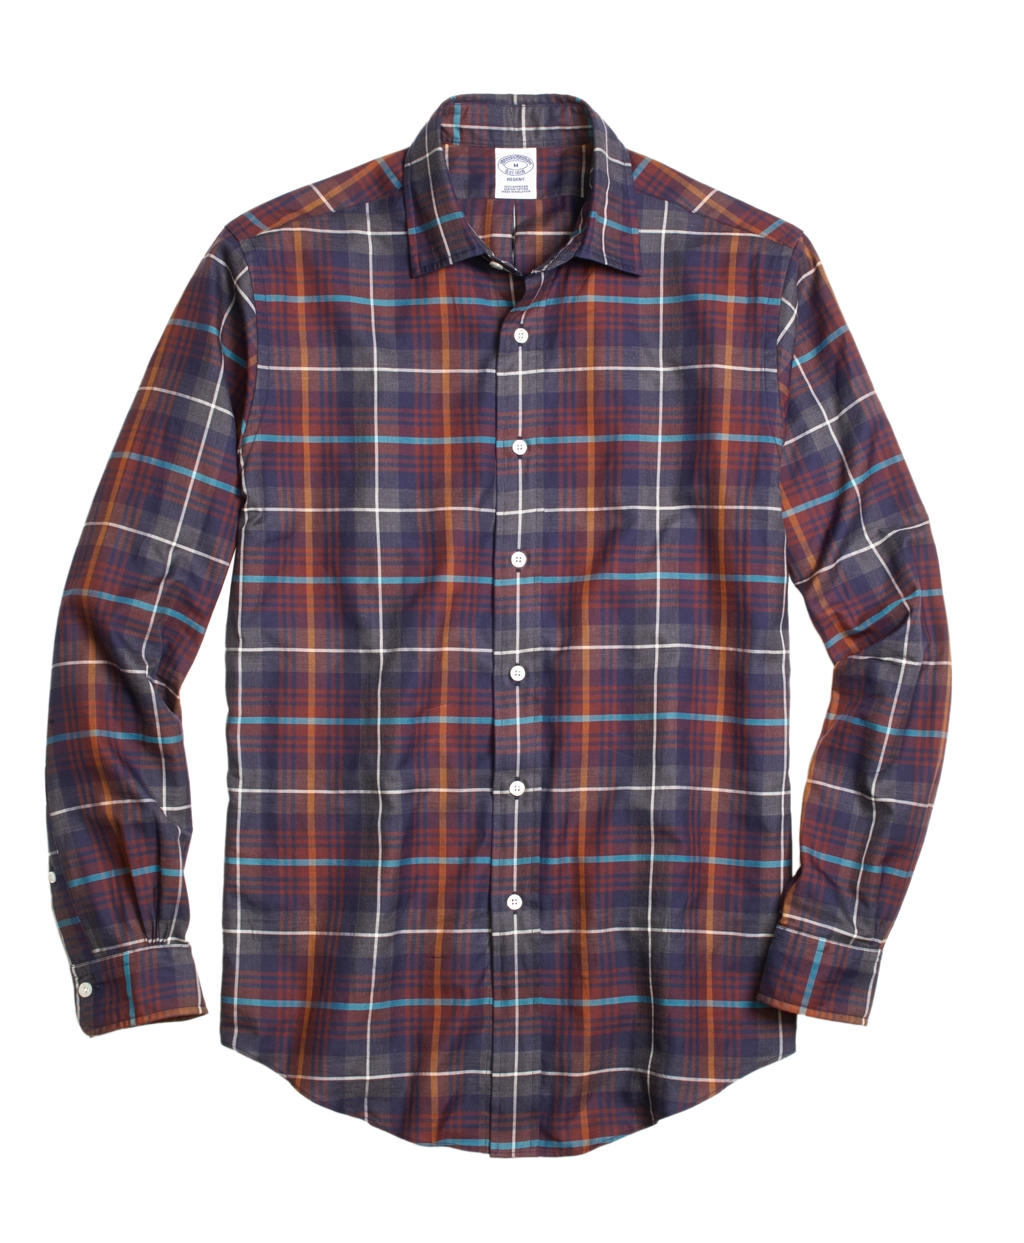 Brooks brothers milano fit brown heathered plaid sport Brooks brothers shirt size guide